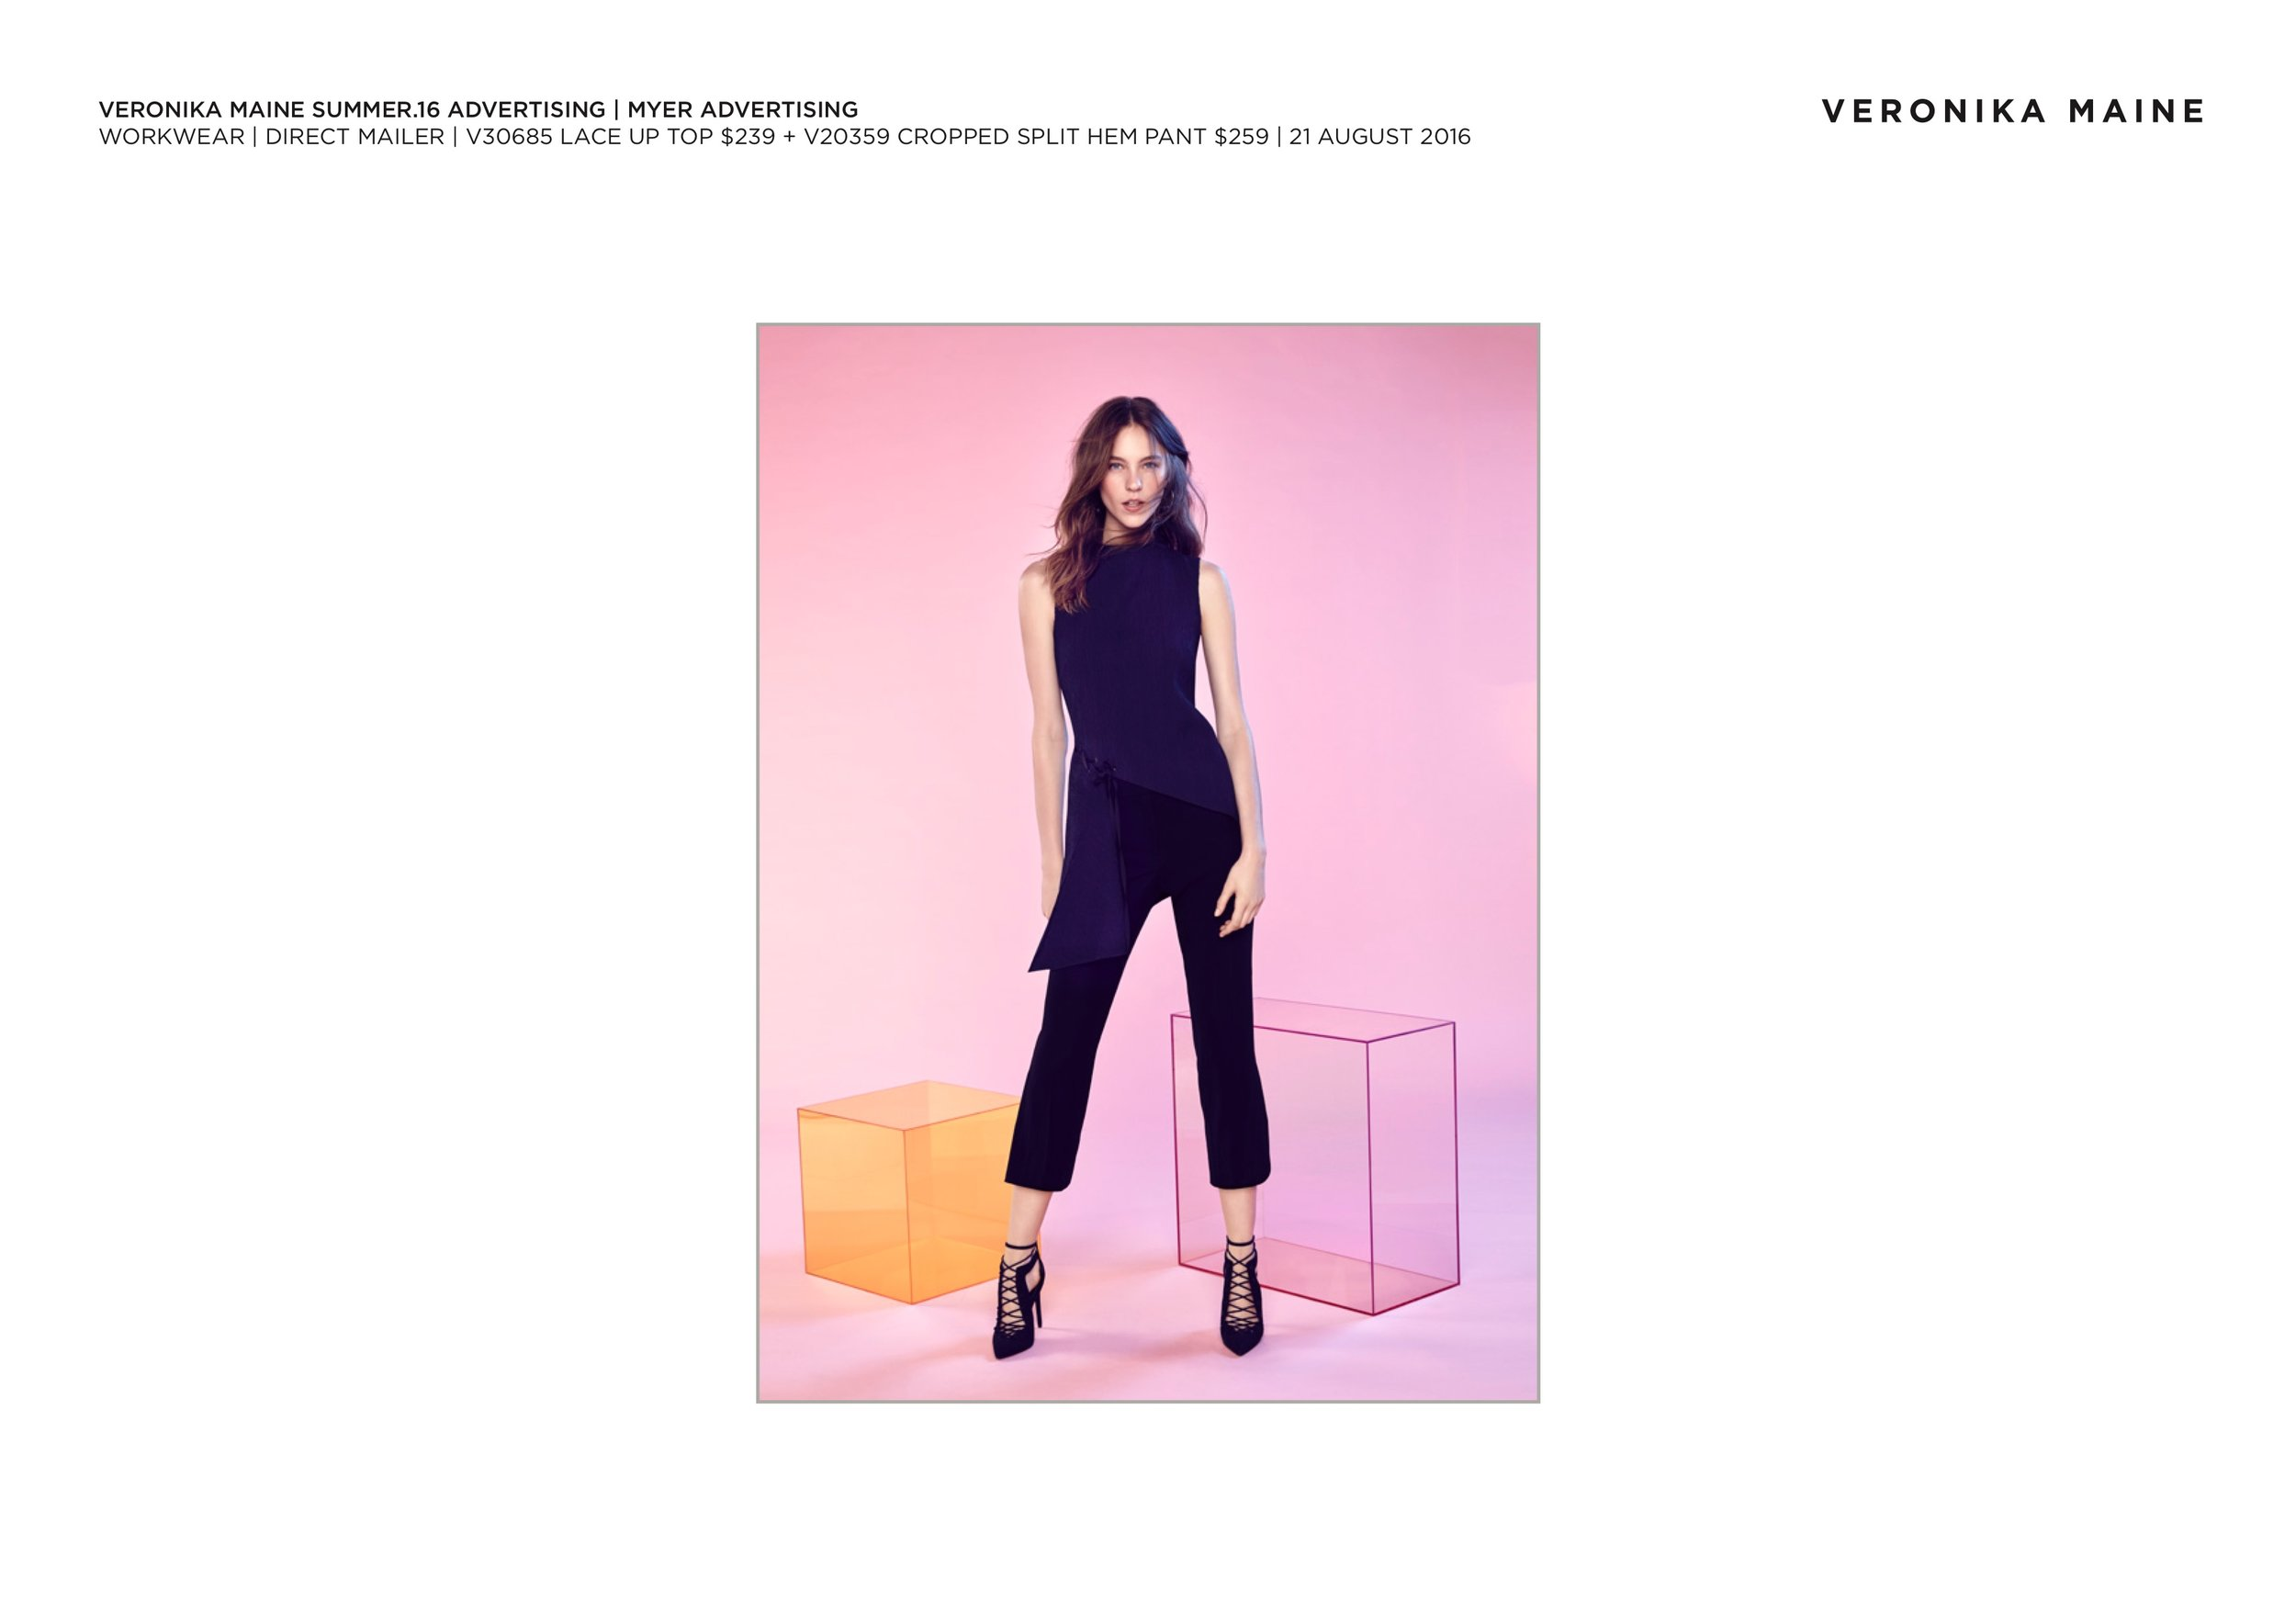 Veronika Maine Summer 2016 I Myer Advertising Continued 2.jpeg